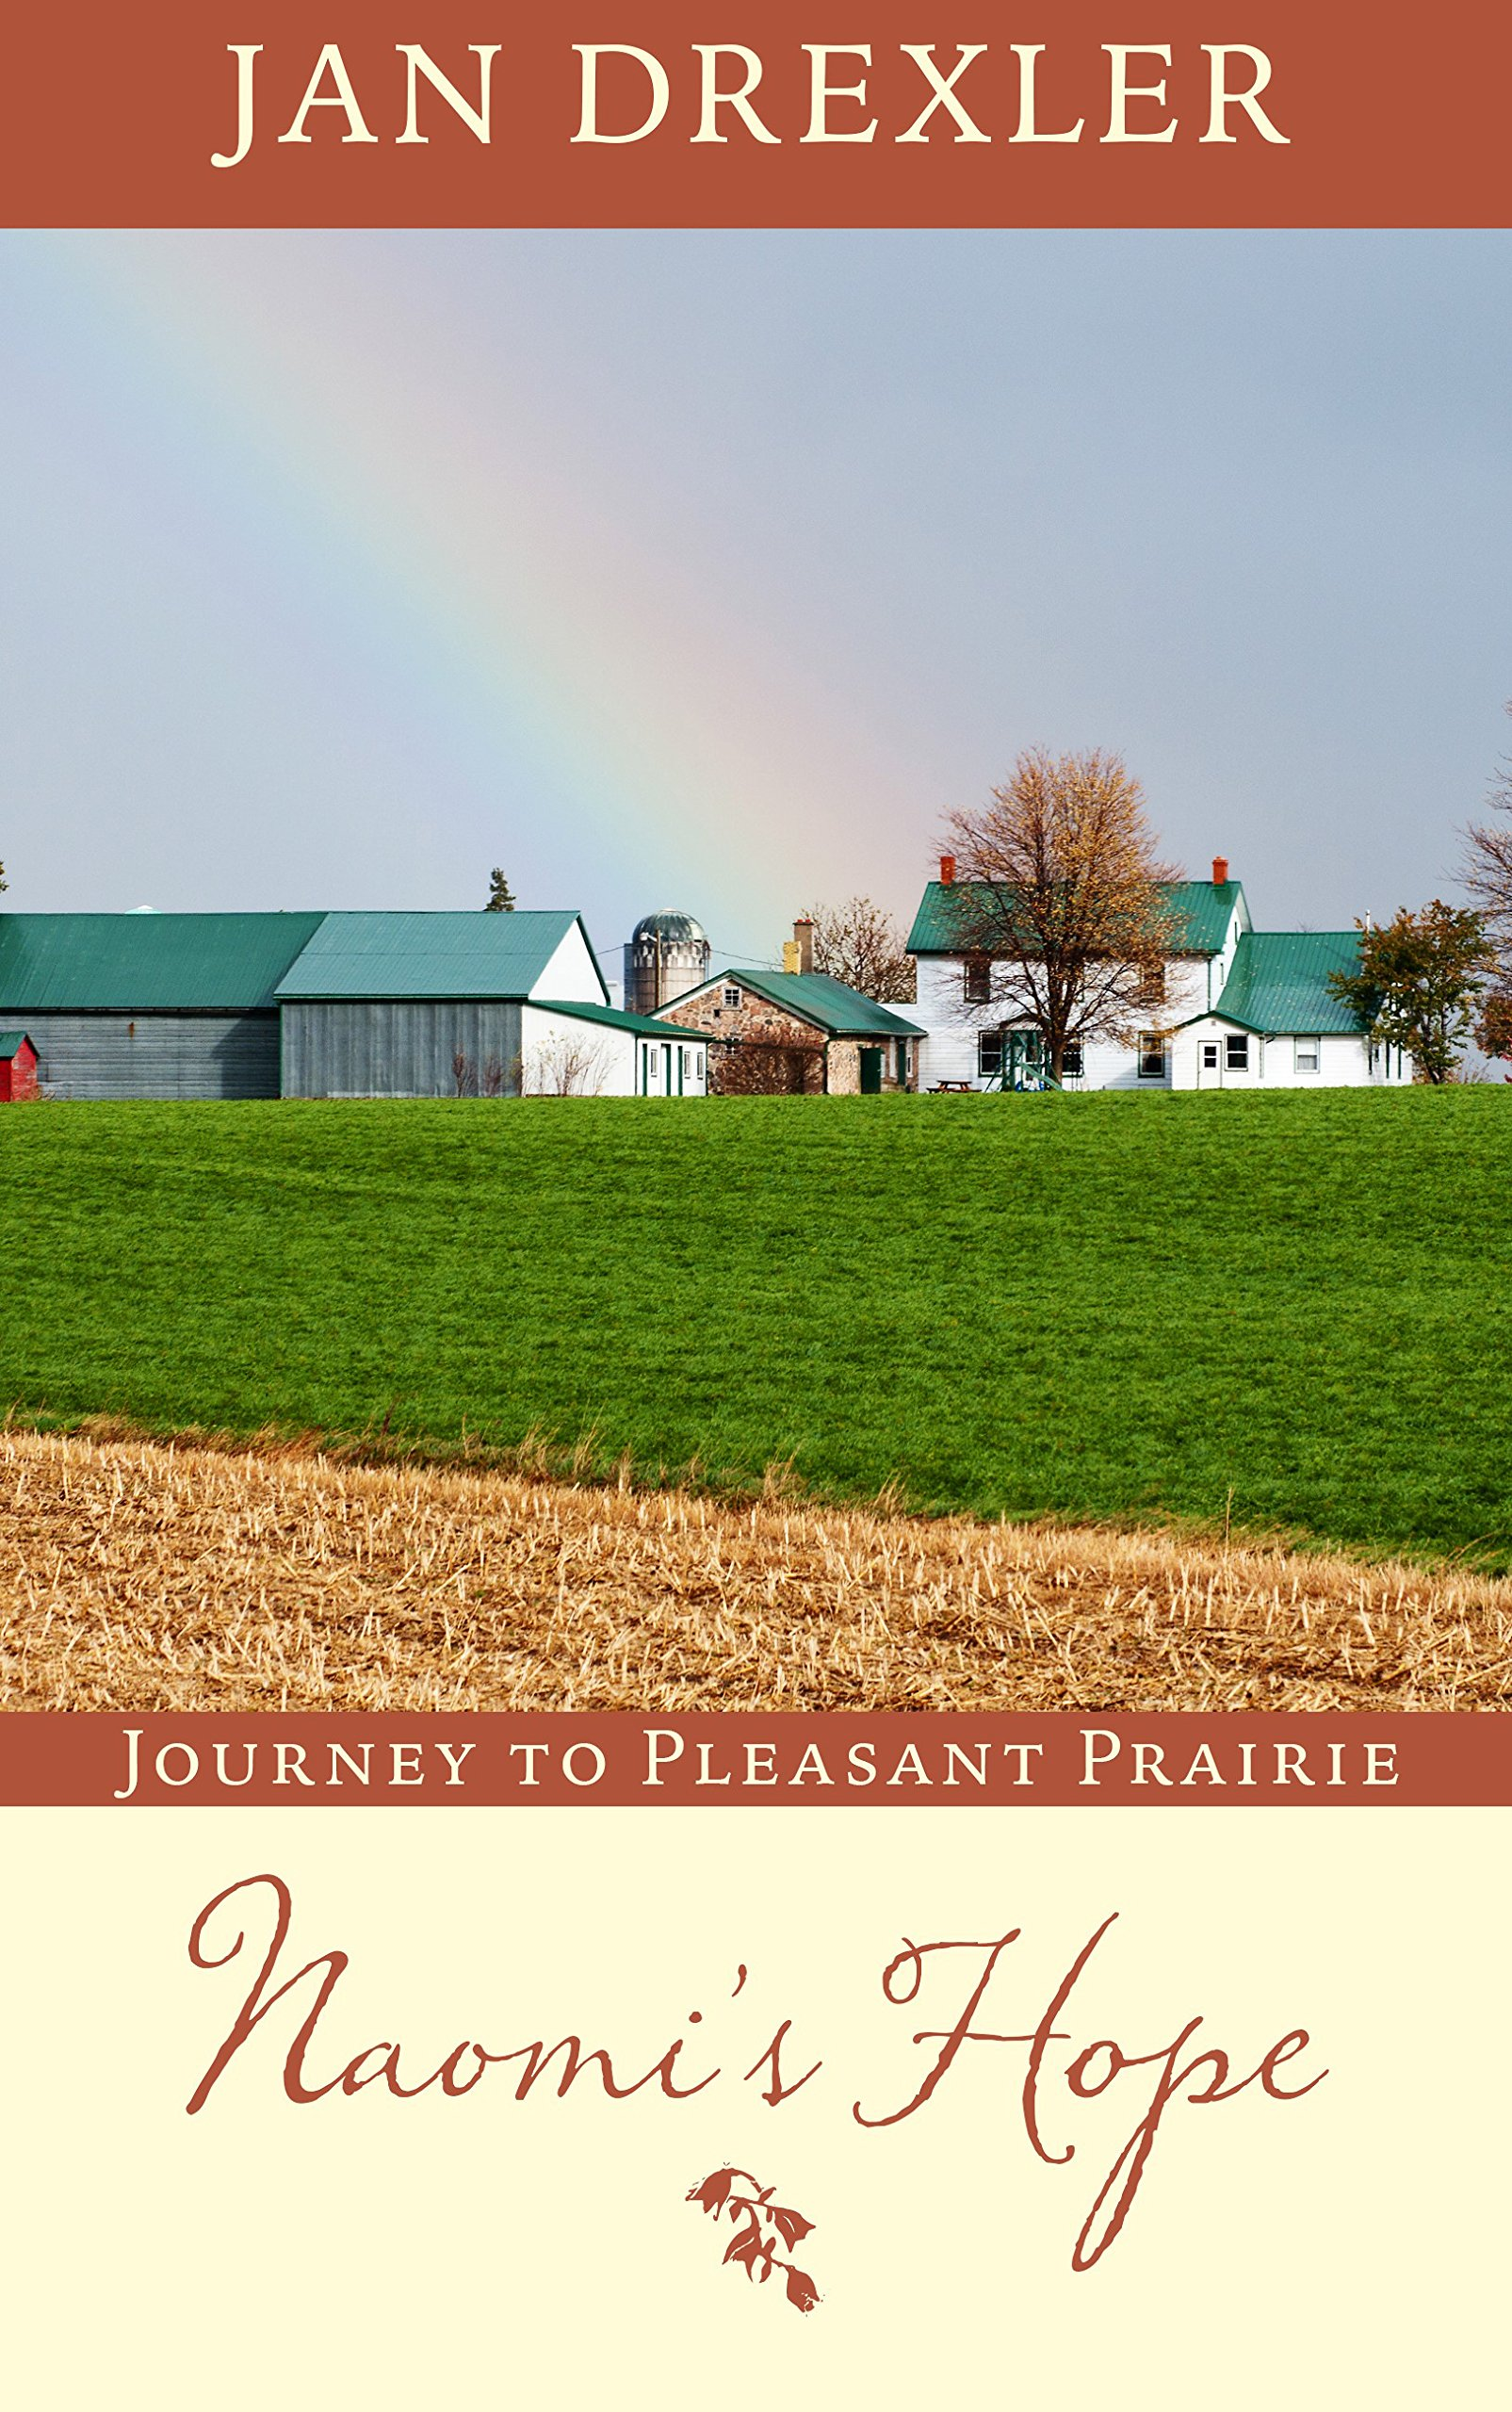 Buy Naomi's Hope (Journey to Pleasant Prairie) Book Online at Low Prices in  India | Naomi's Hope (Journey to Pleasant Prairie) Reviews & Ratings -  Amazon.in